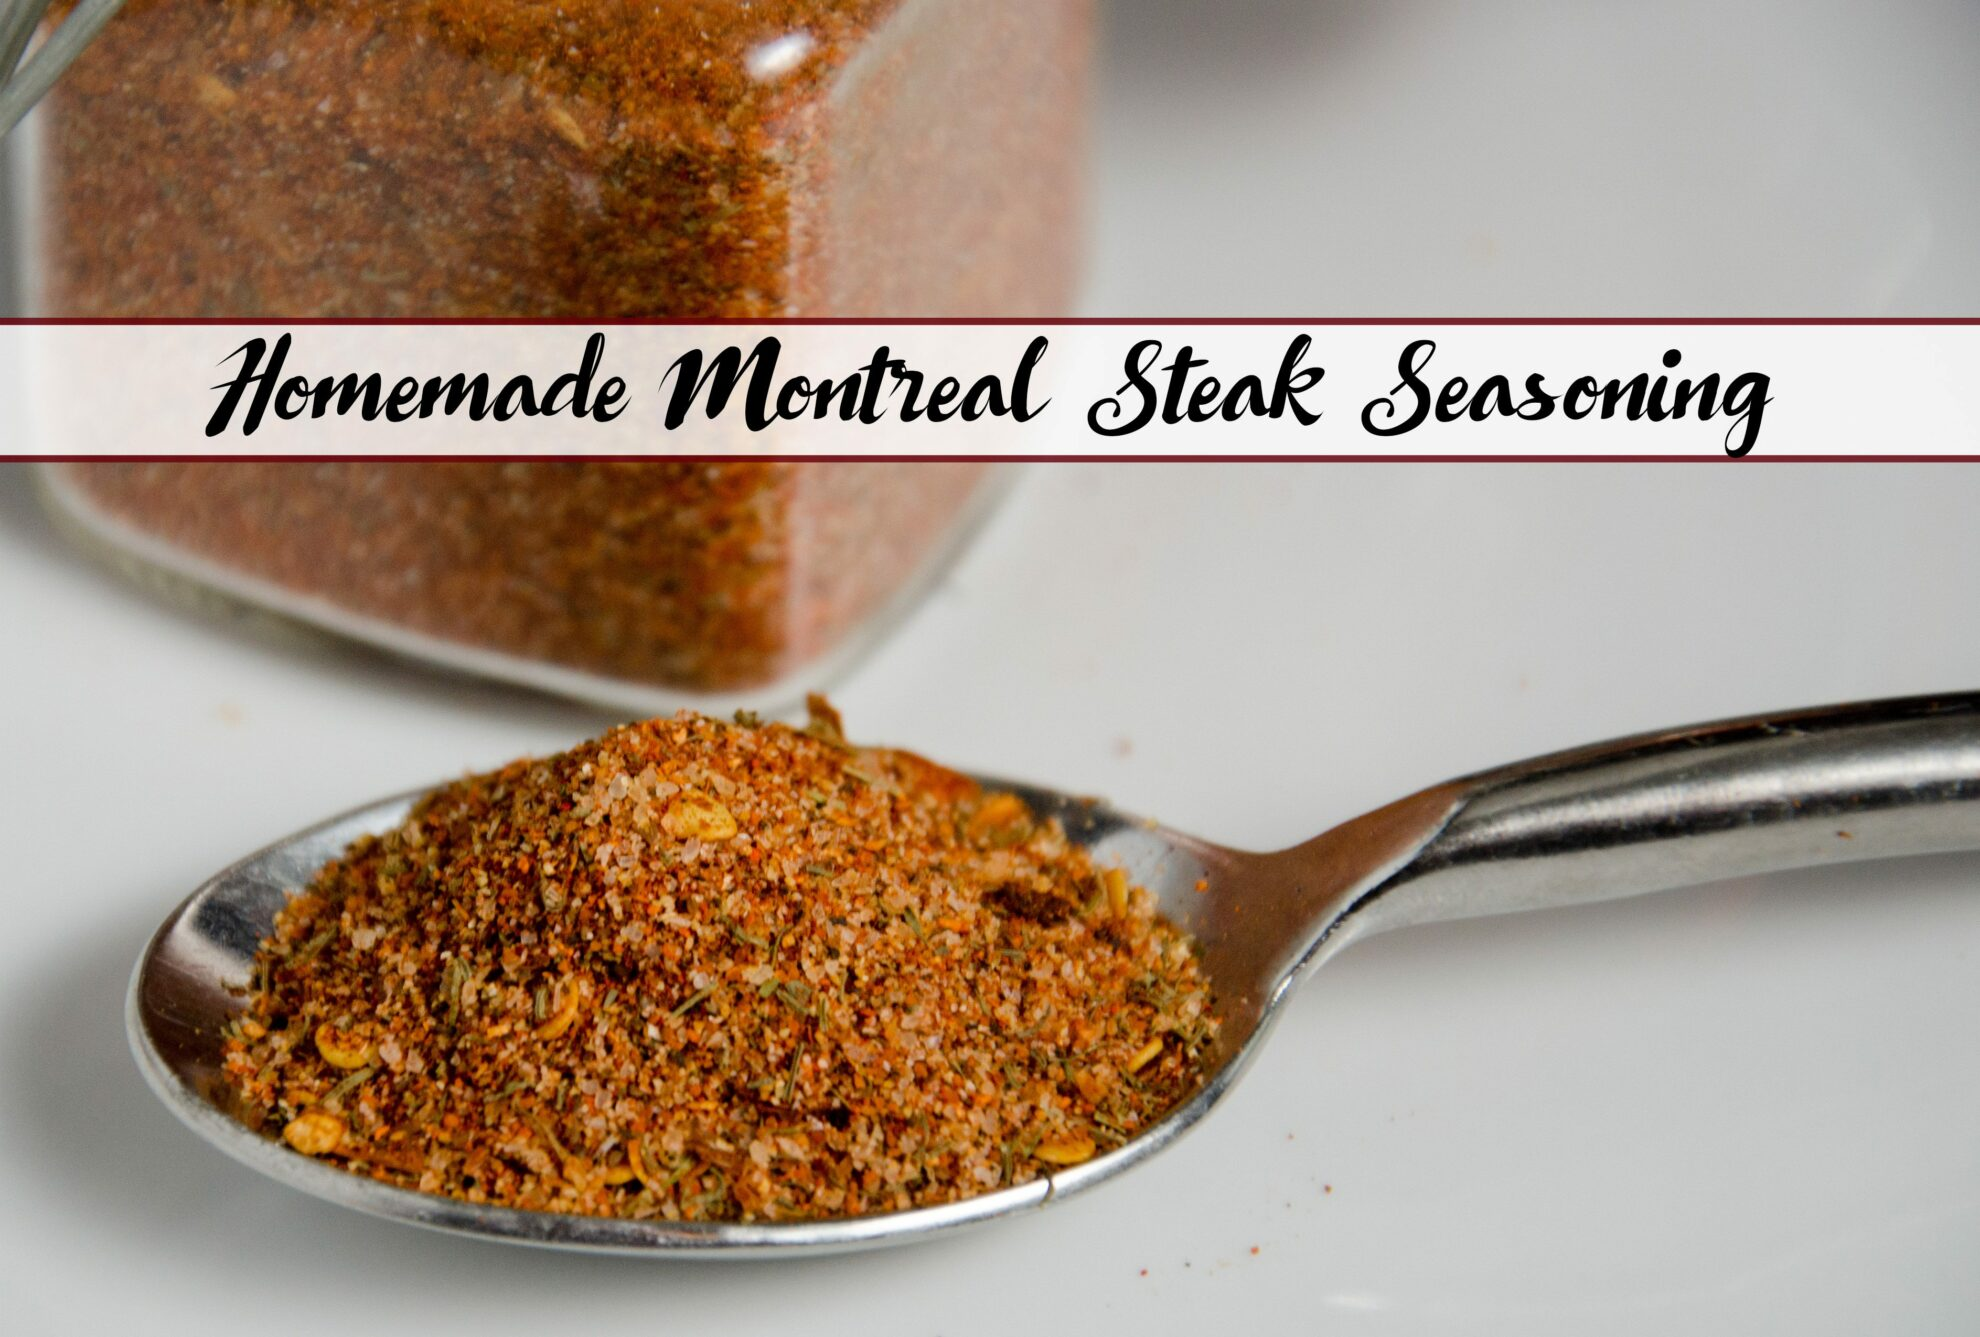 Homemade Montreal Steak Seasoning (aka: Montreal Steak Spice): easy to make, better than store-bought. Use on steak, pork, chicken, and more.